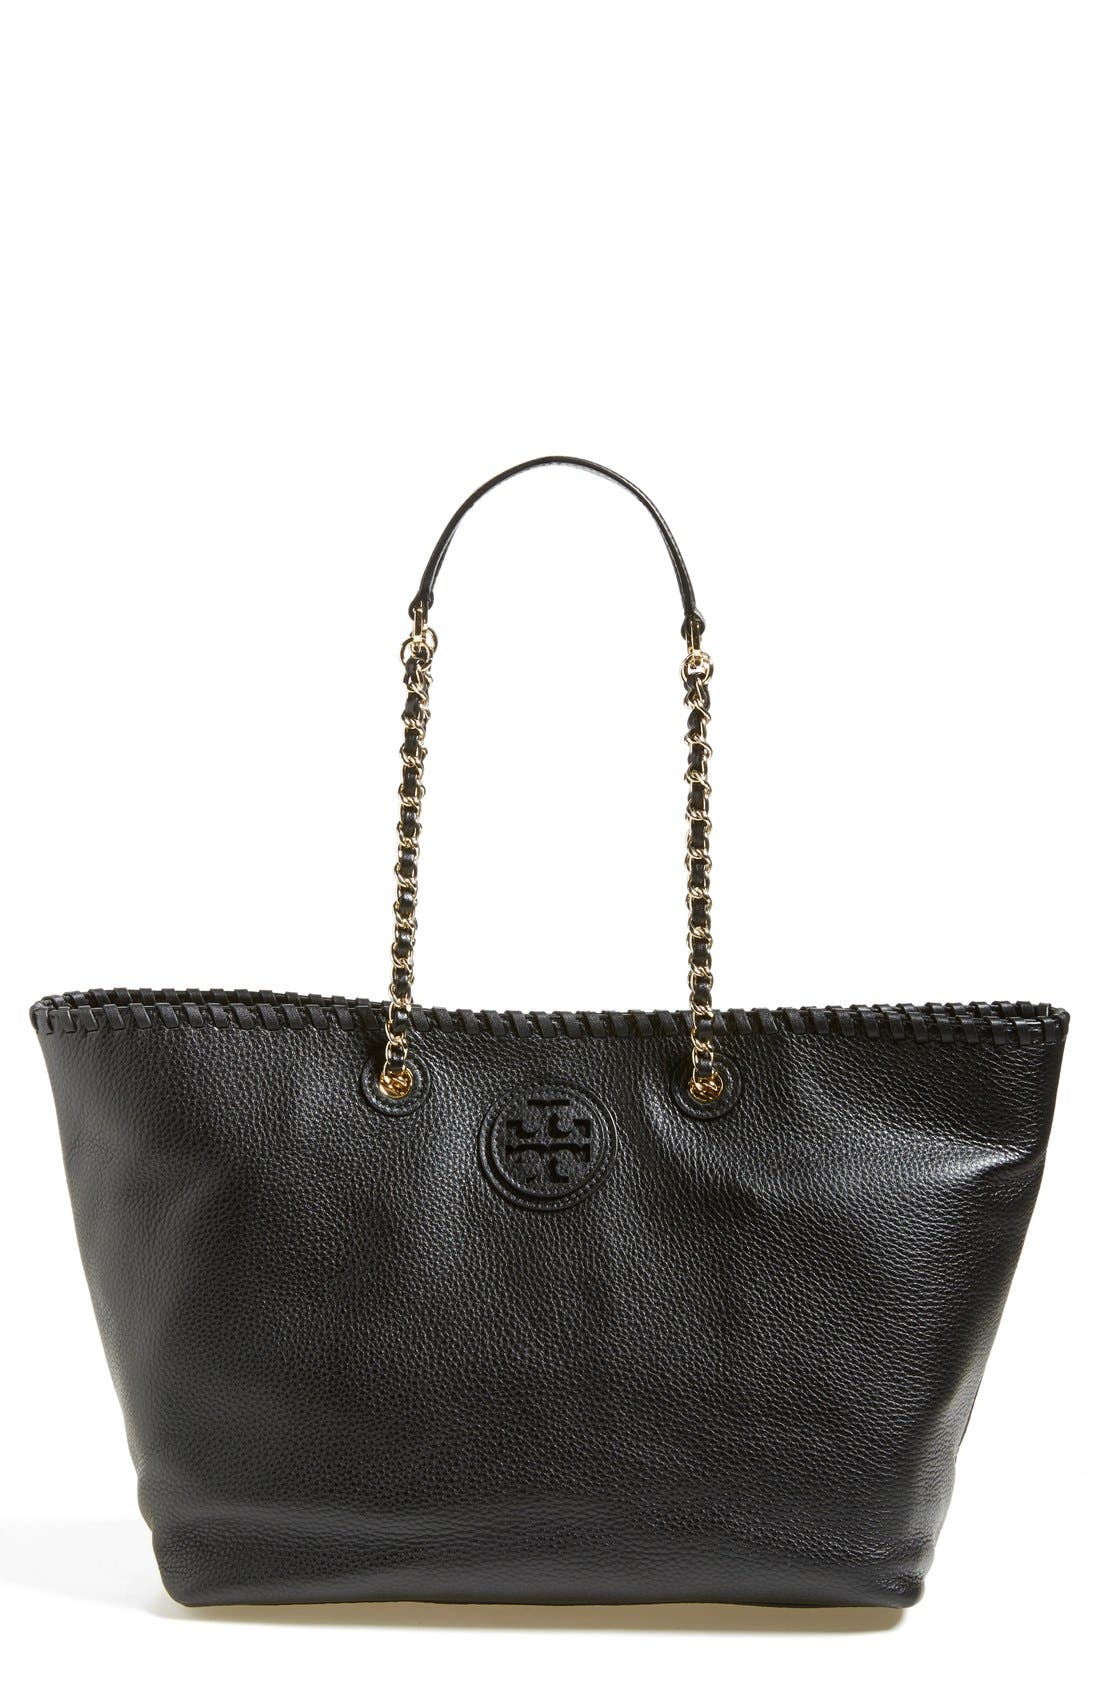 Alternate Image 1 Selected - Tory Burch 'Marion' Leather Tote